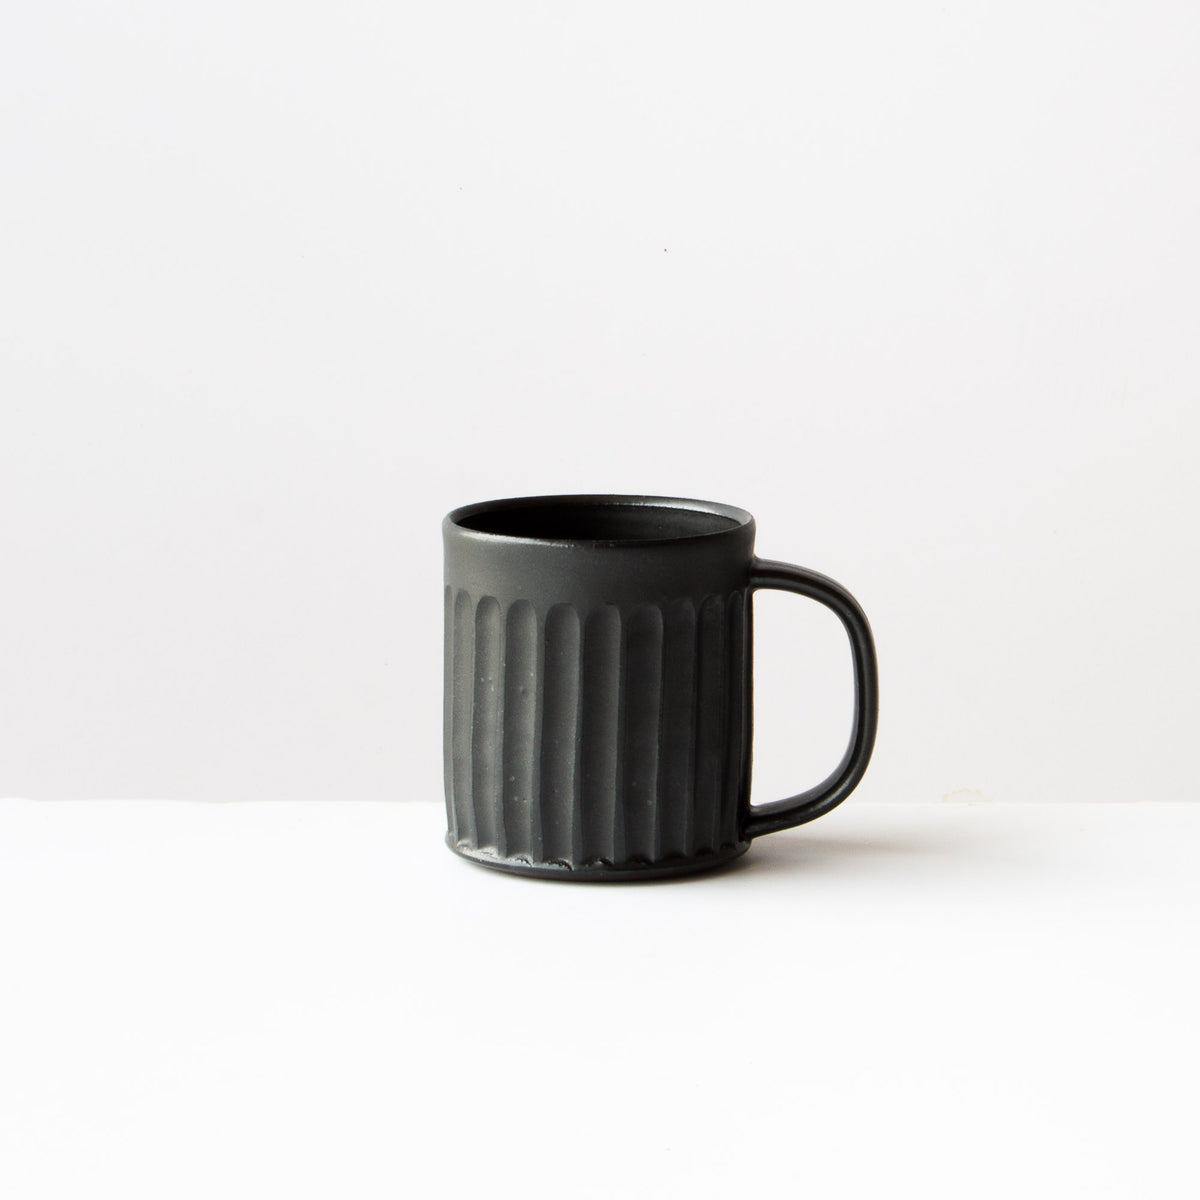 Black Colour - Hand Thrown Ceramic Coffee Mug - Handmade in Quebec by Christian Roy - Chic & Basta